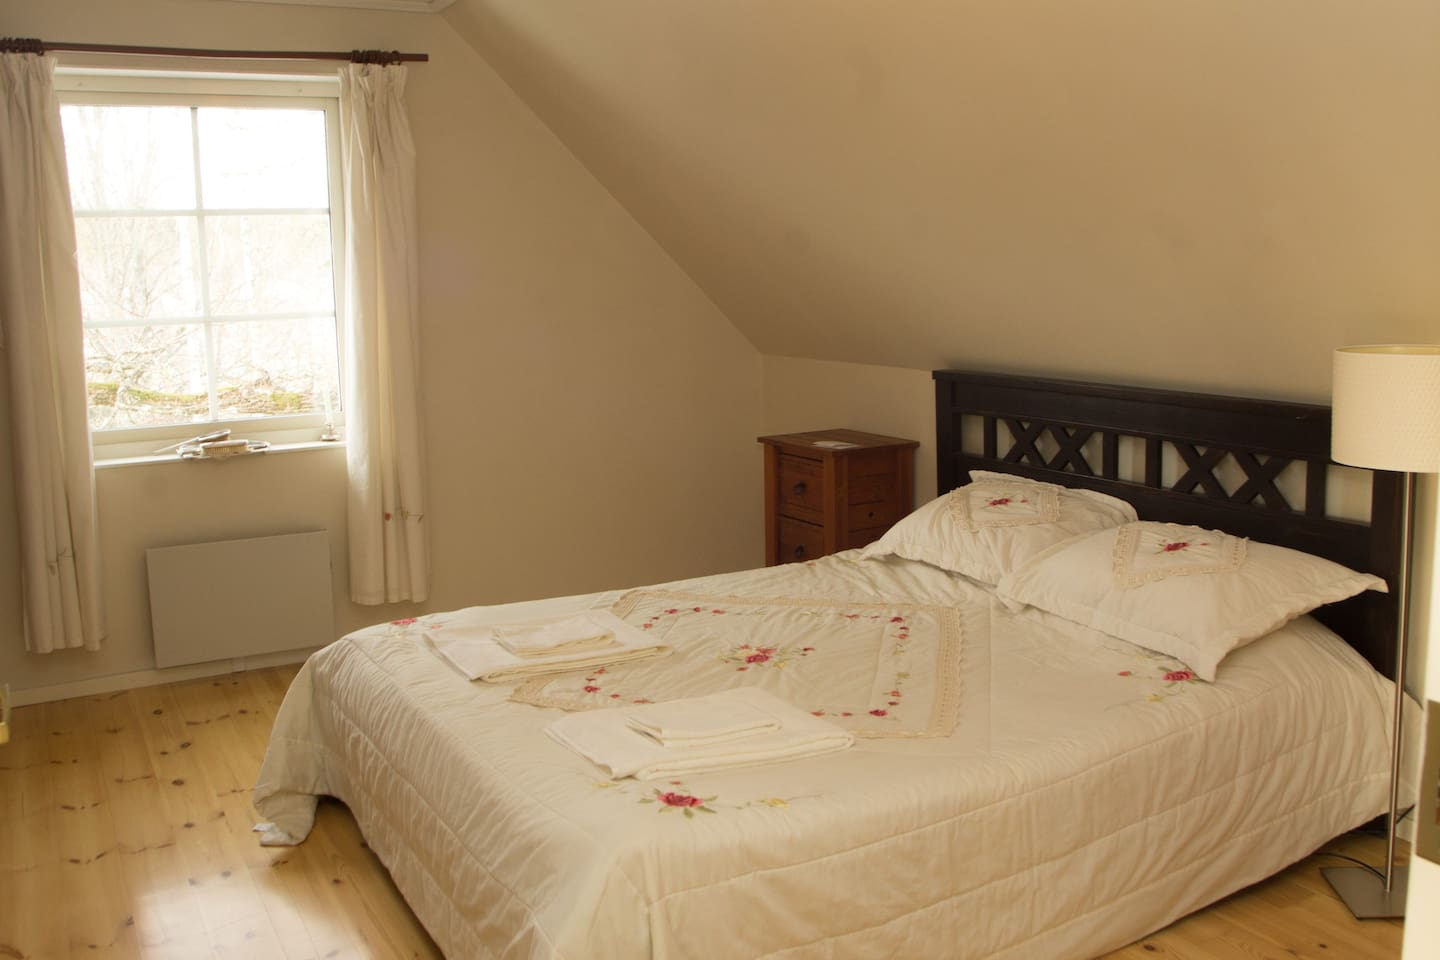 Upstairs bedroom with Queen size bed and large closet with hanging space